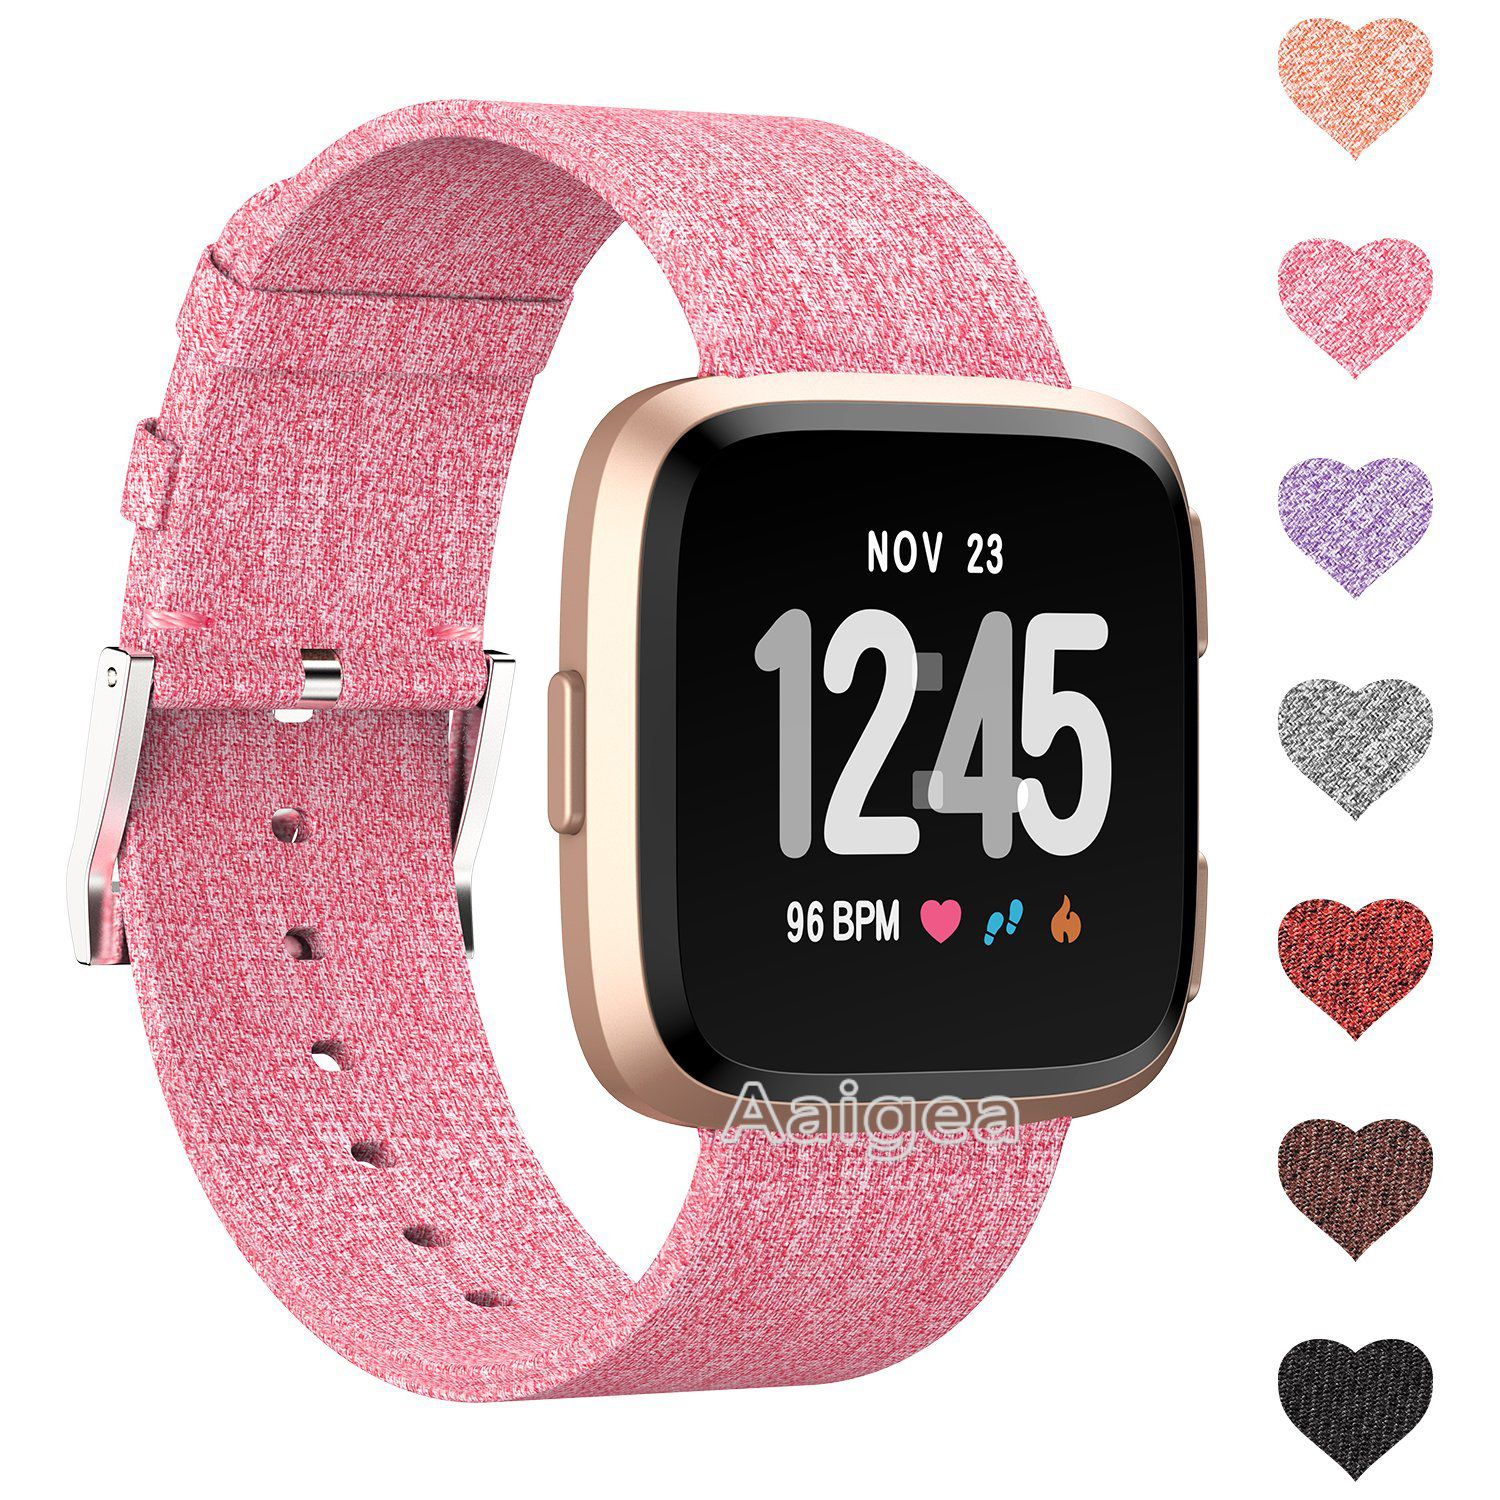 Woven Fabric Watch Strap Band for Fitbit Versa Fitness Smart Watch Quick Release Classic Buckle fashion nylon Wrist band strap все цены